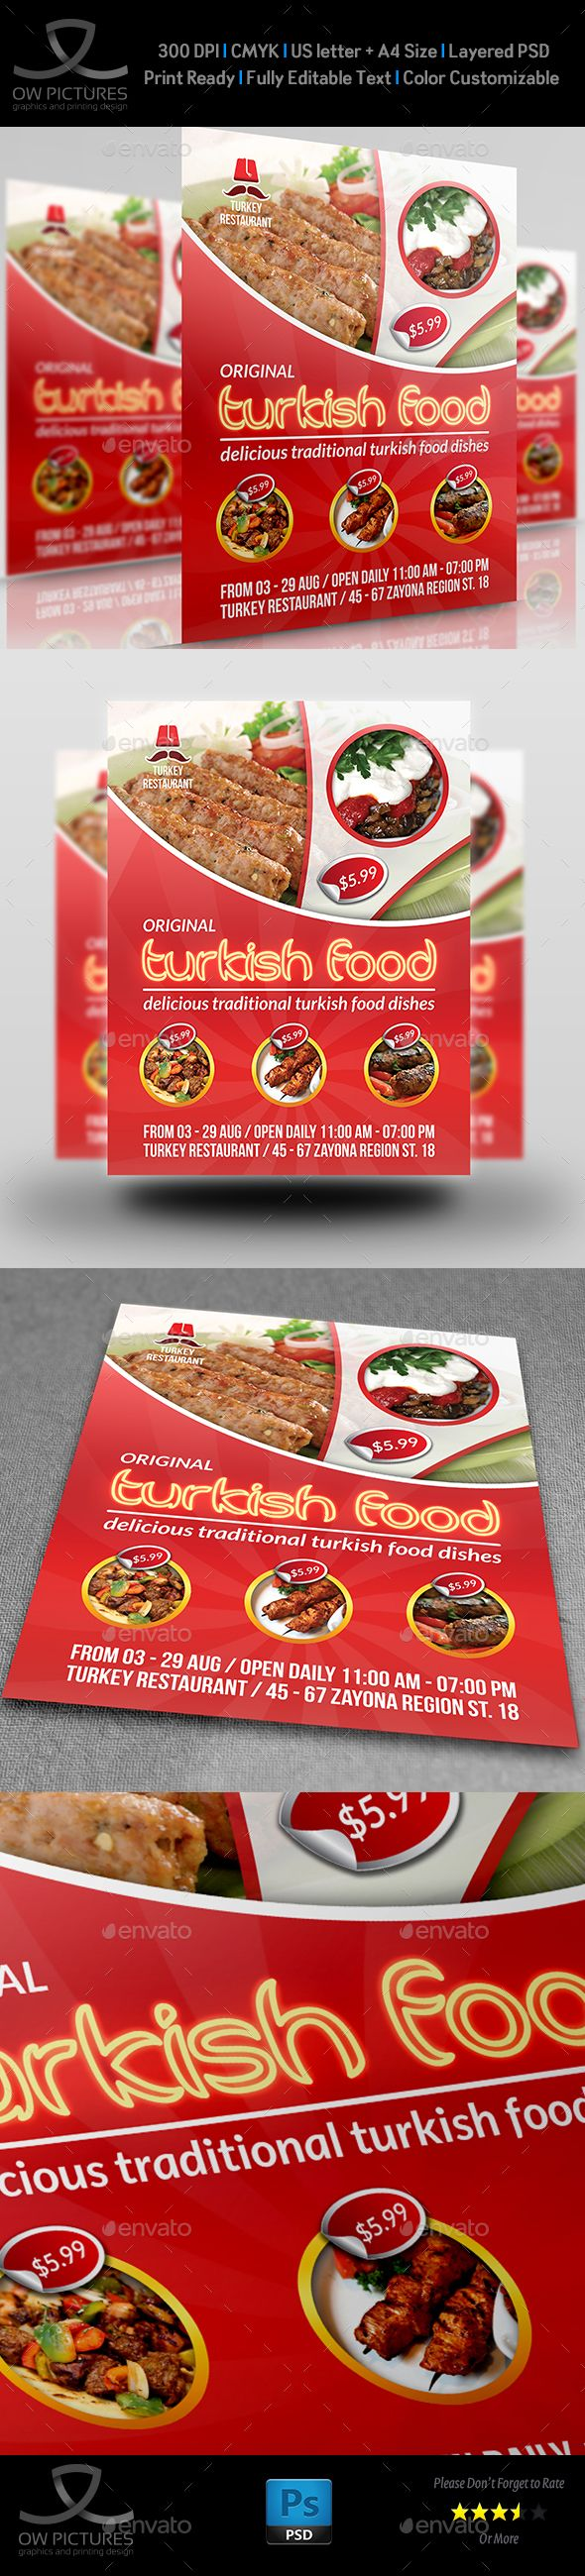 Turkish Restaurant Flyer Template by OWPictures Flyer Description: Turkish Restaurant Flyer Template was designed for exclusively corporate and small scale companies. Also it